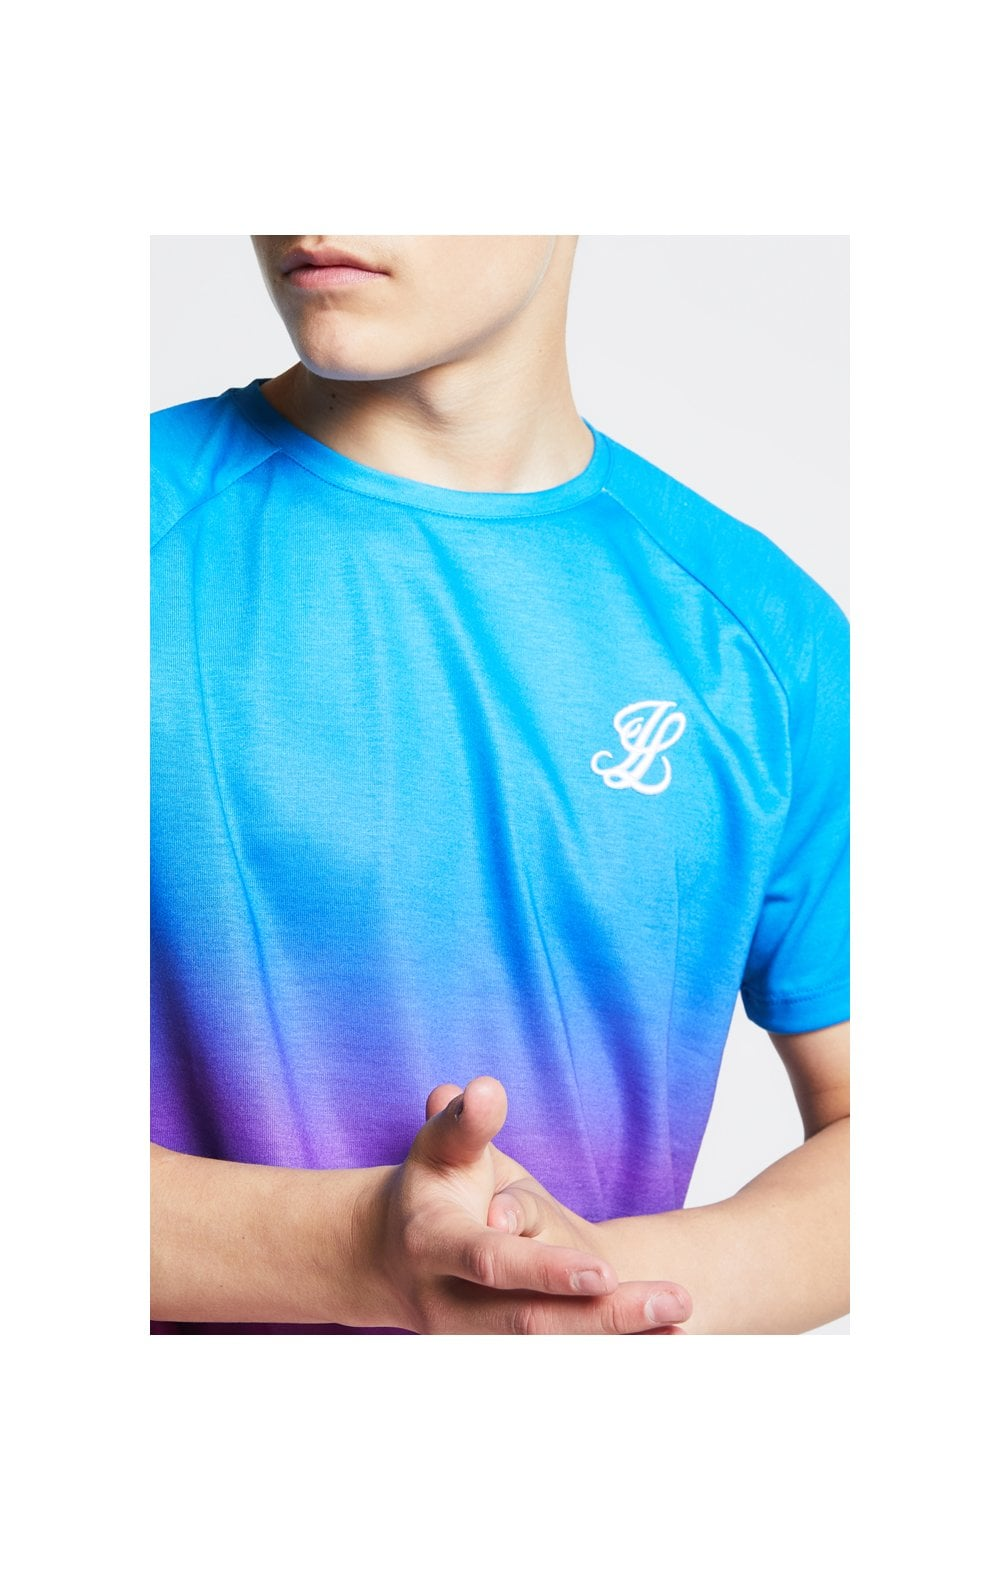 Illusive London Fade Tee - Blue & Pink Kids Top Sizes: 13-14 YRS